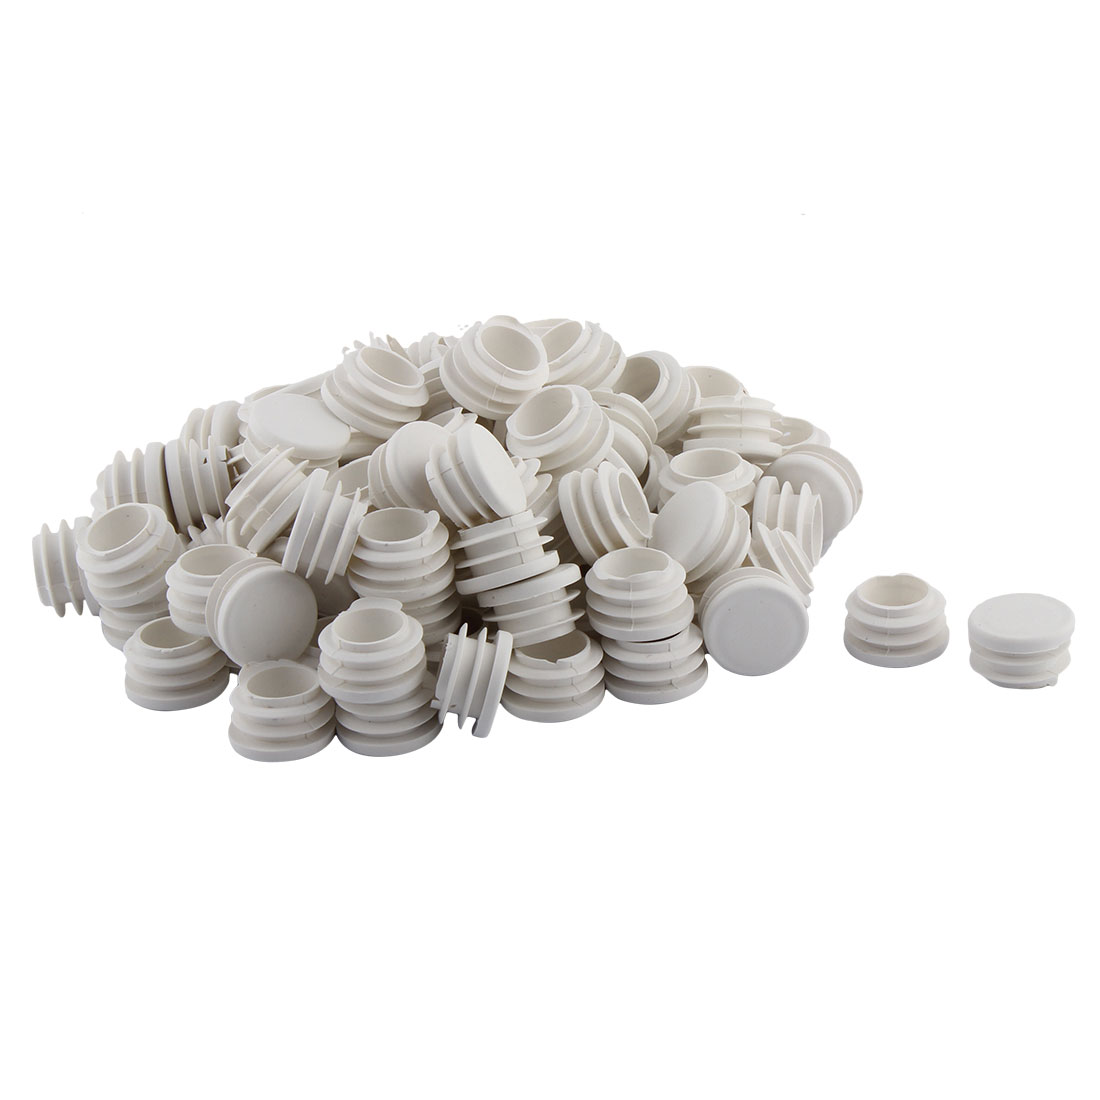 Home Office Plastic Round Shaped Table Chair Leg Tube Pipe Insert White 28mm Dia 100 PCS